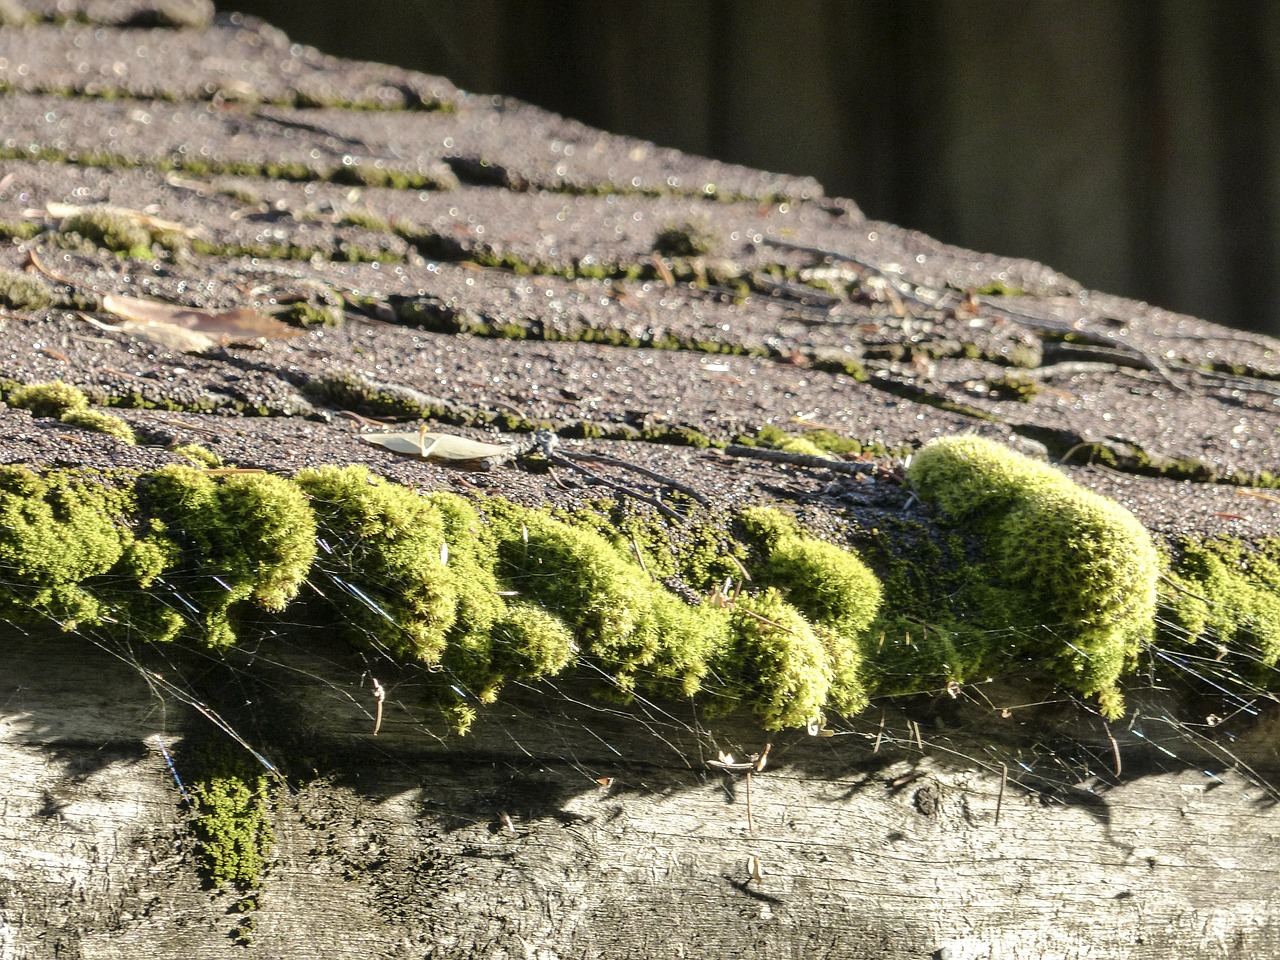 Dealing With A Mossy Roof The Environmentally Friendly Way